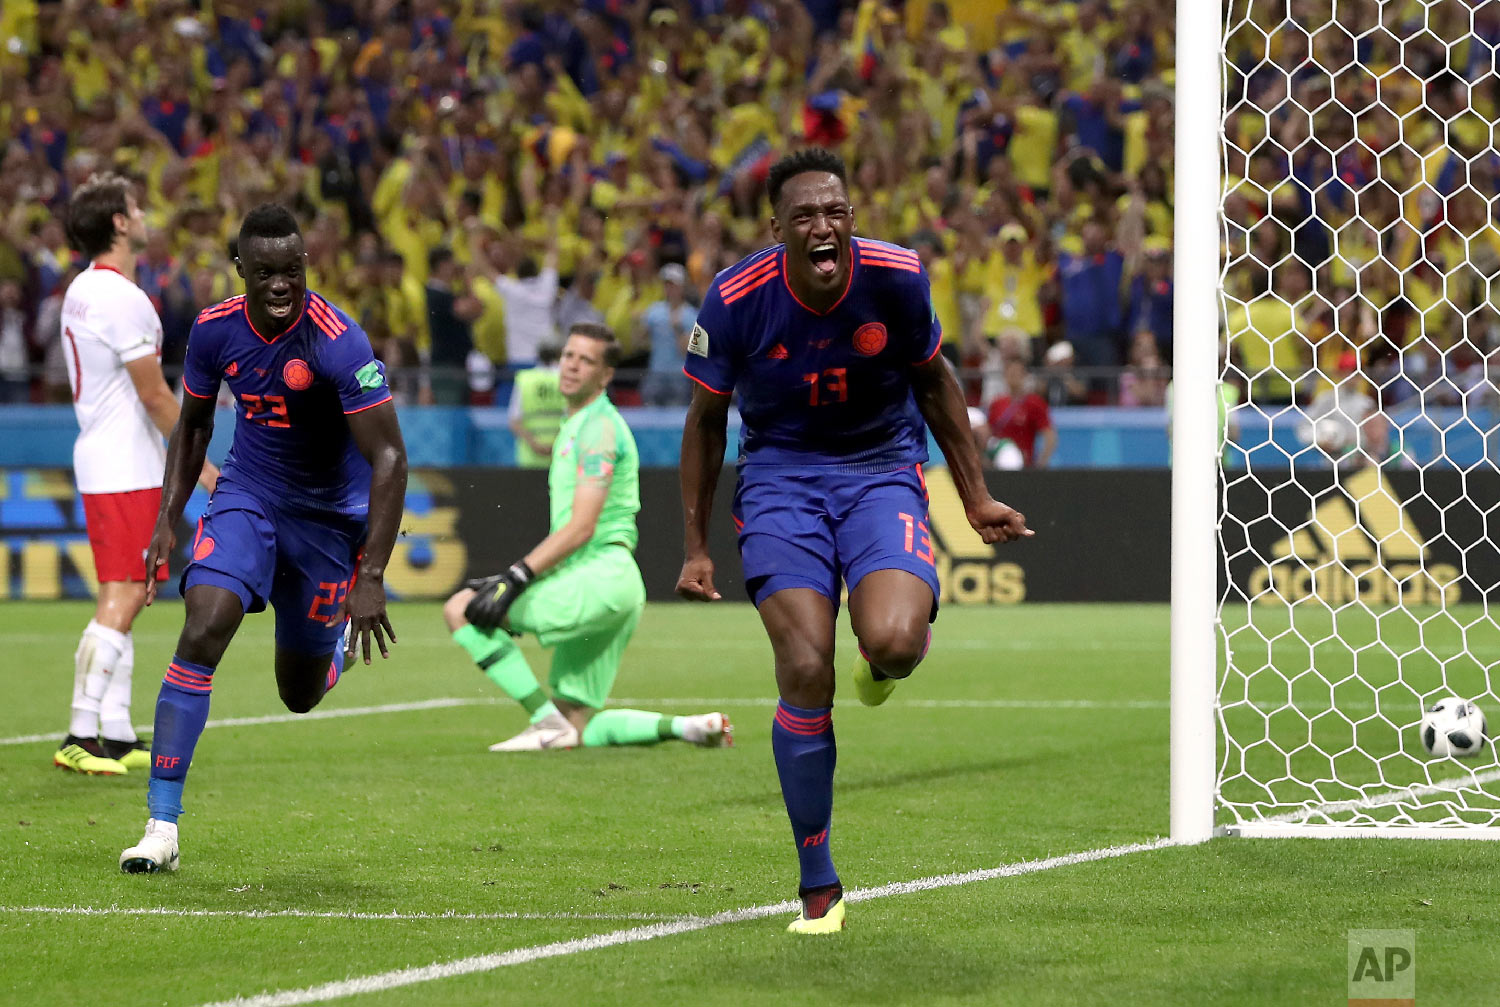 Colombia's scorer Yerry Mina, right and his teammate Davinson Sanchez, left, celebrate the opening goal during the group H match between Poland and Colombia at the 2018 soccer World Cup at the Kazan Arena in Kazan, Russia, Sunday, June 24, 2018. (AP Photo/Thanassis Stavrakis)